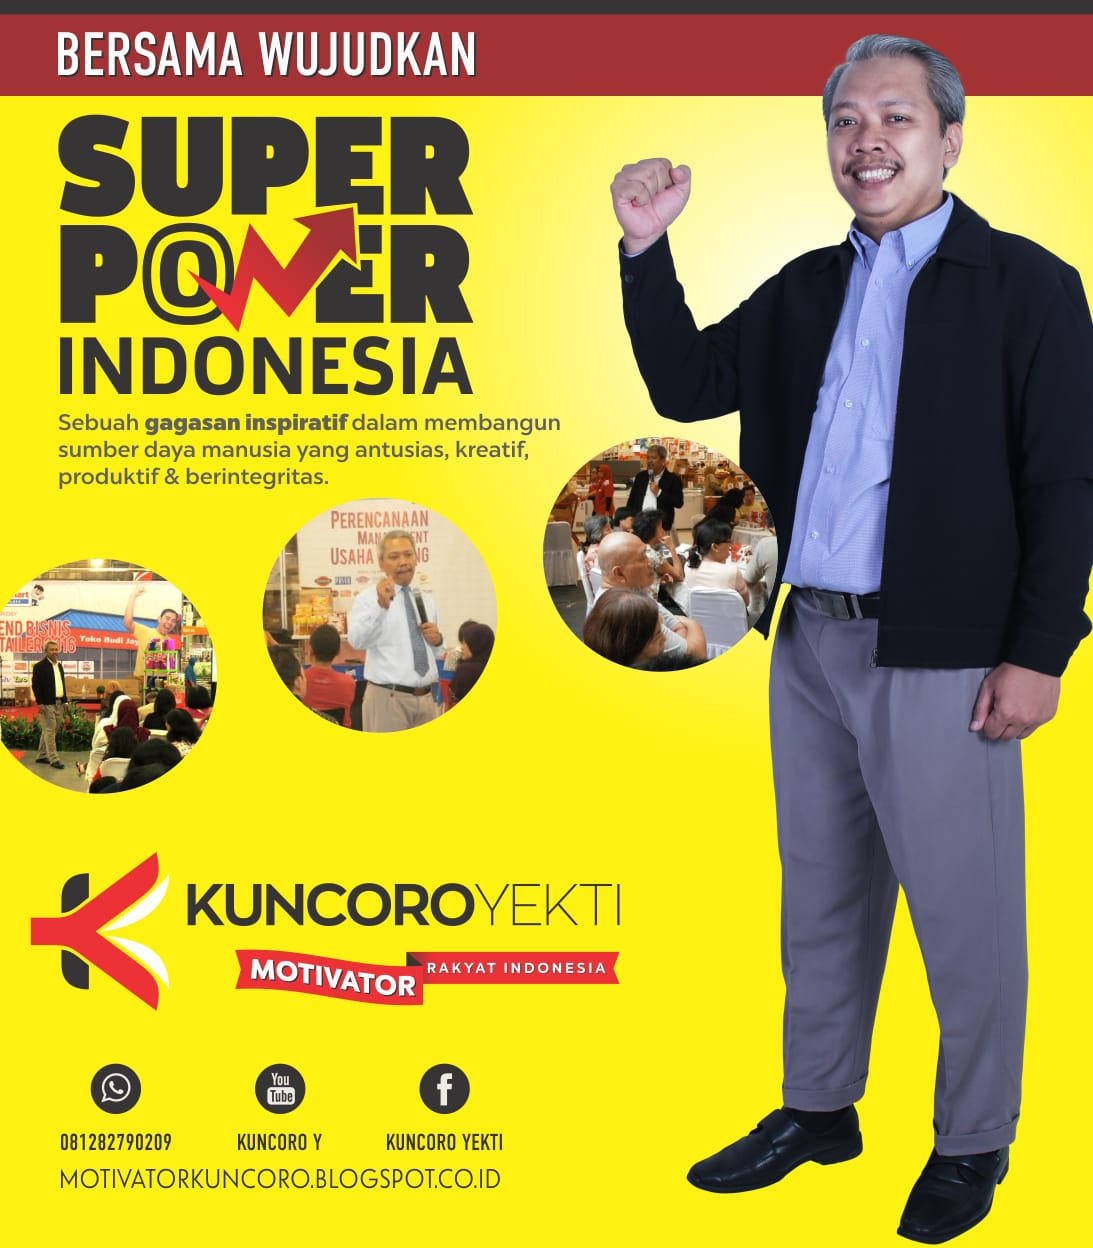 Motivator Super Power Indonesia